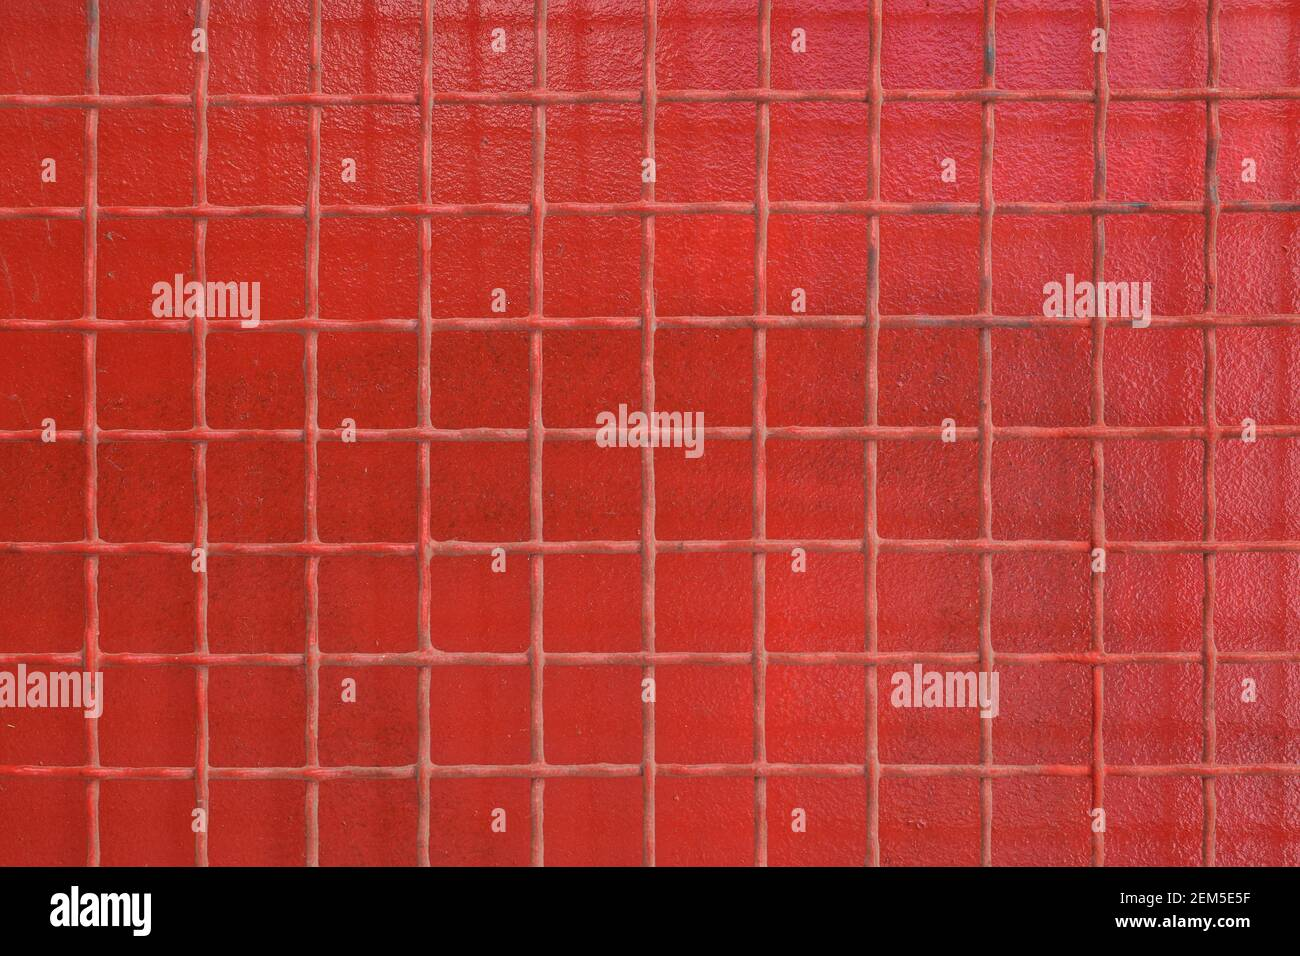 Rusty iron wire mesh grid squares pattern over red painted metal background. Stock Photo